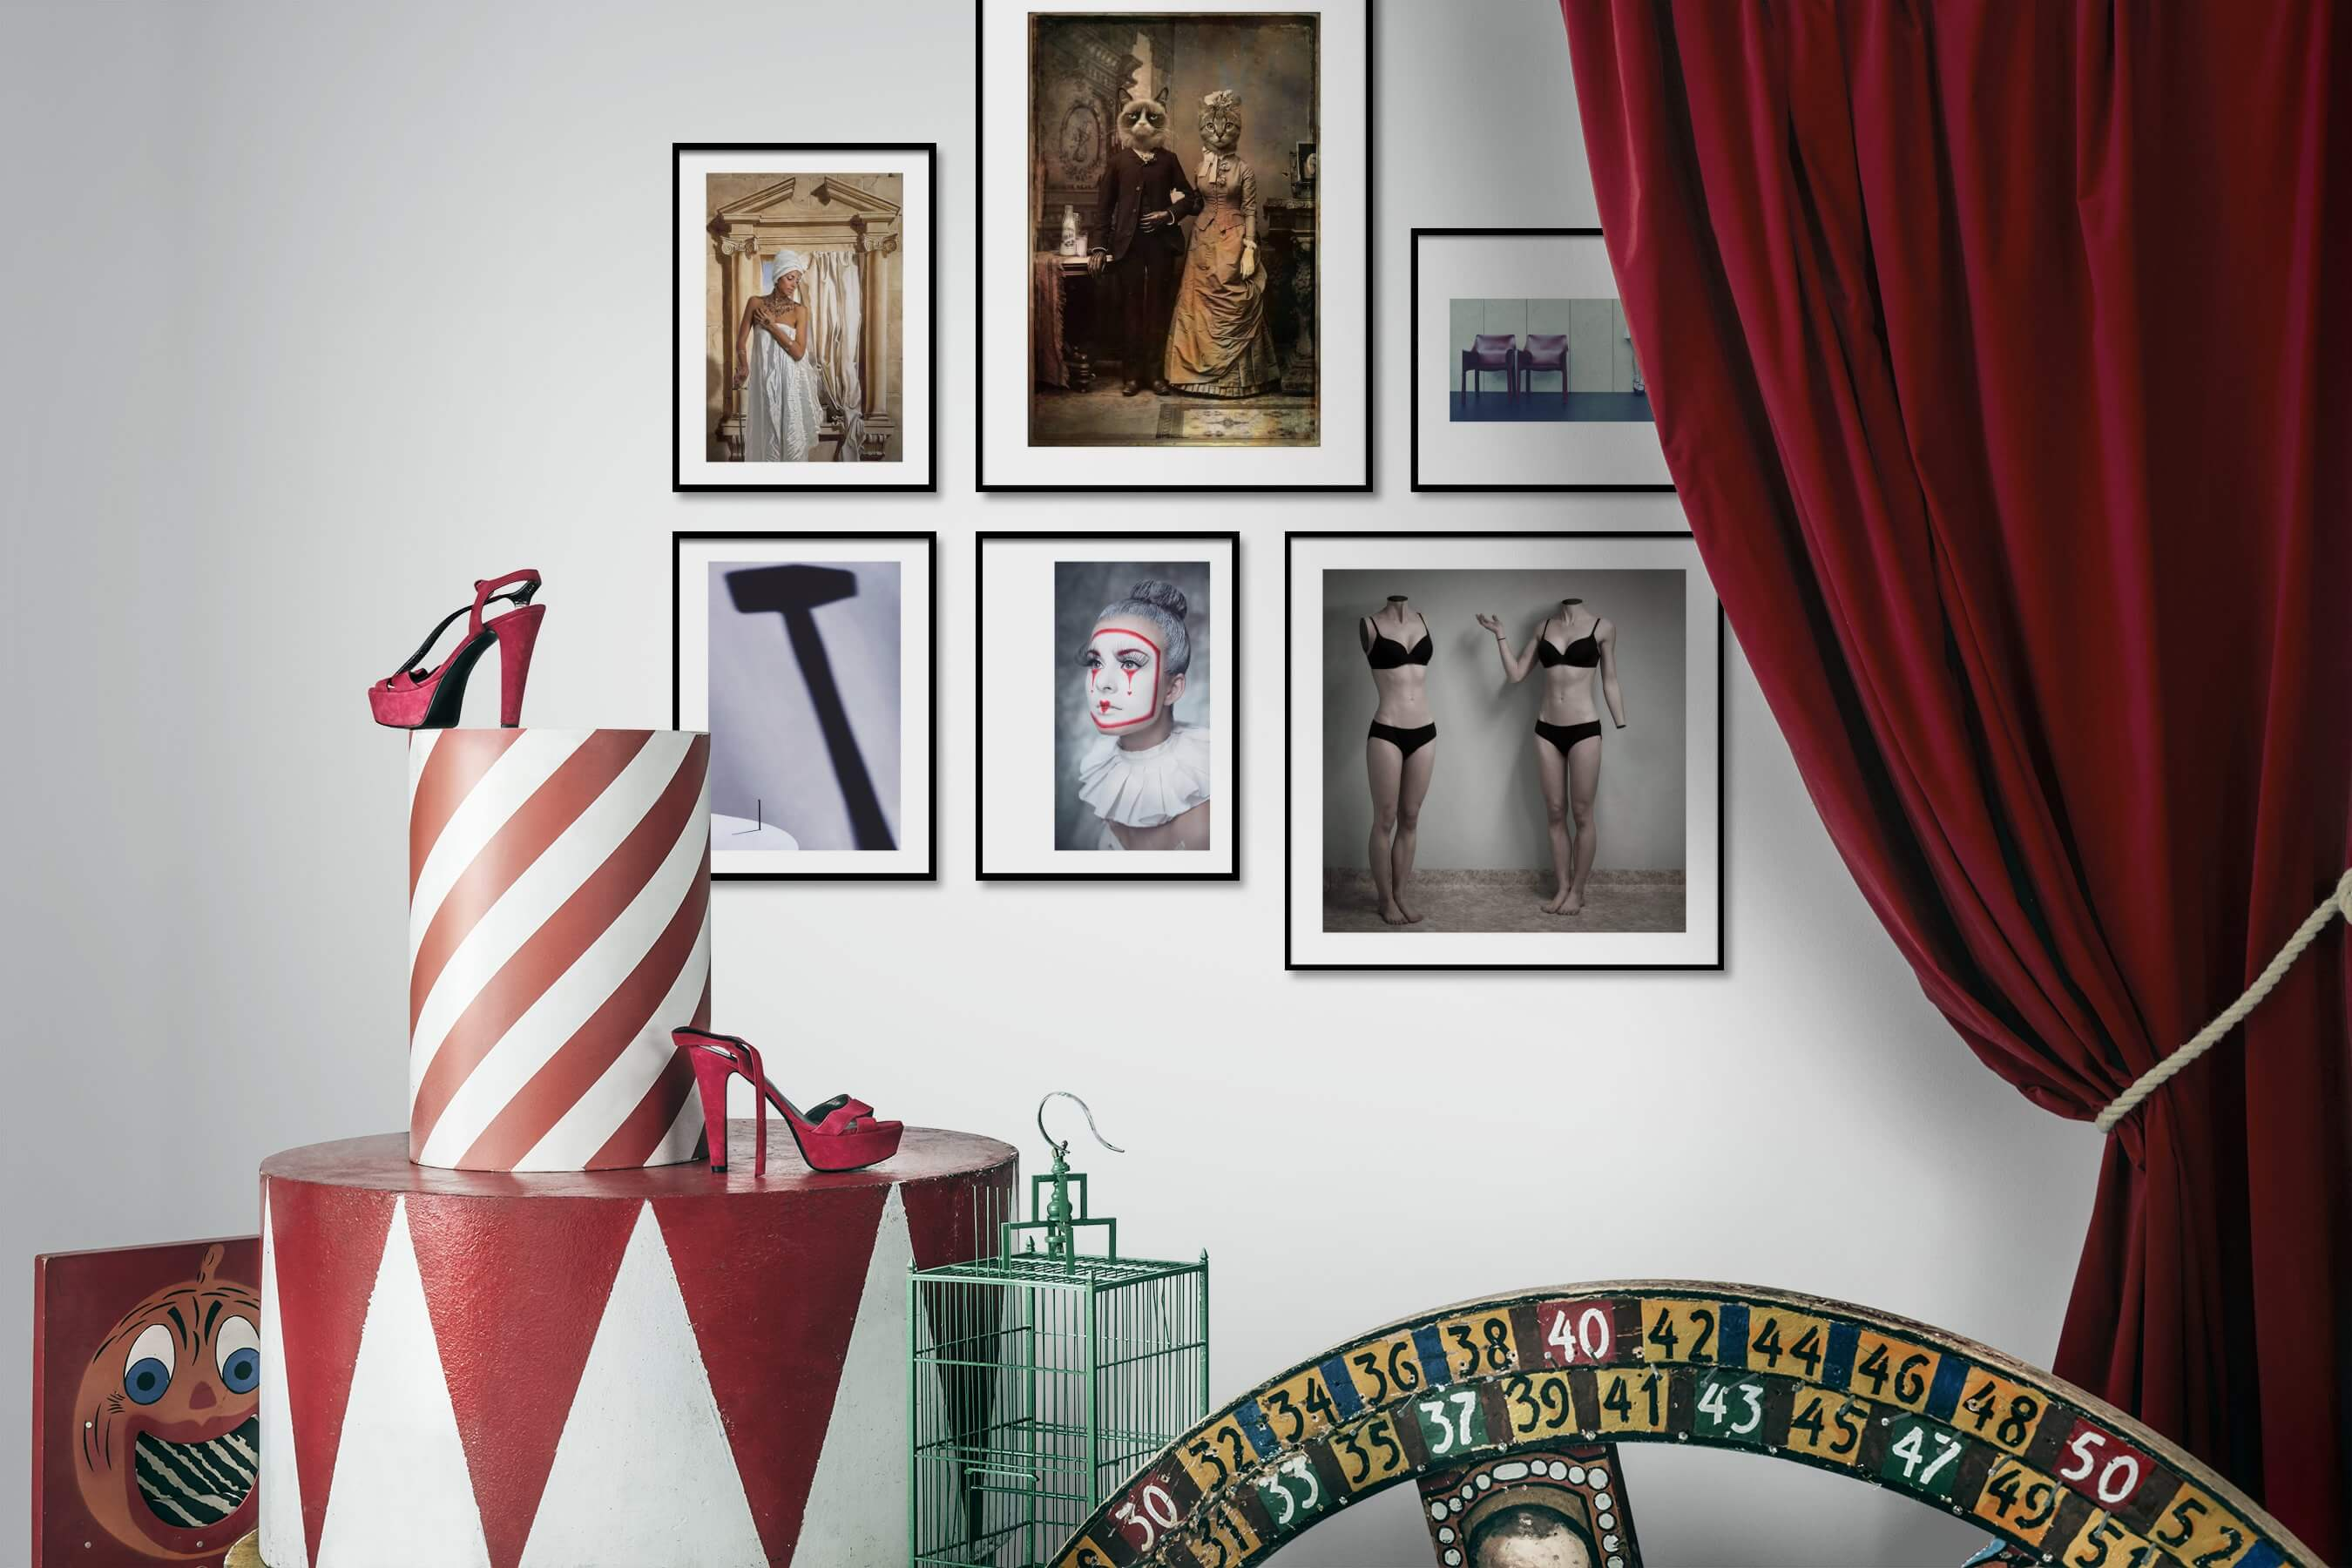 Gallery wall idea with six framed pictures arranged on a wall depicting Fashion & Beauty, Vintage, Artsy, Animals, For the Minimalist, and For the Moderate